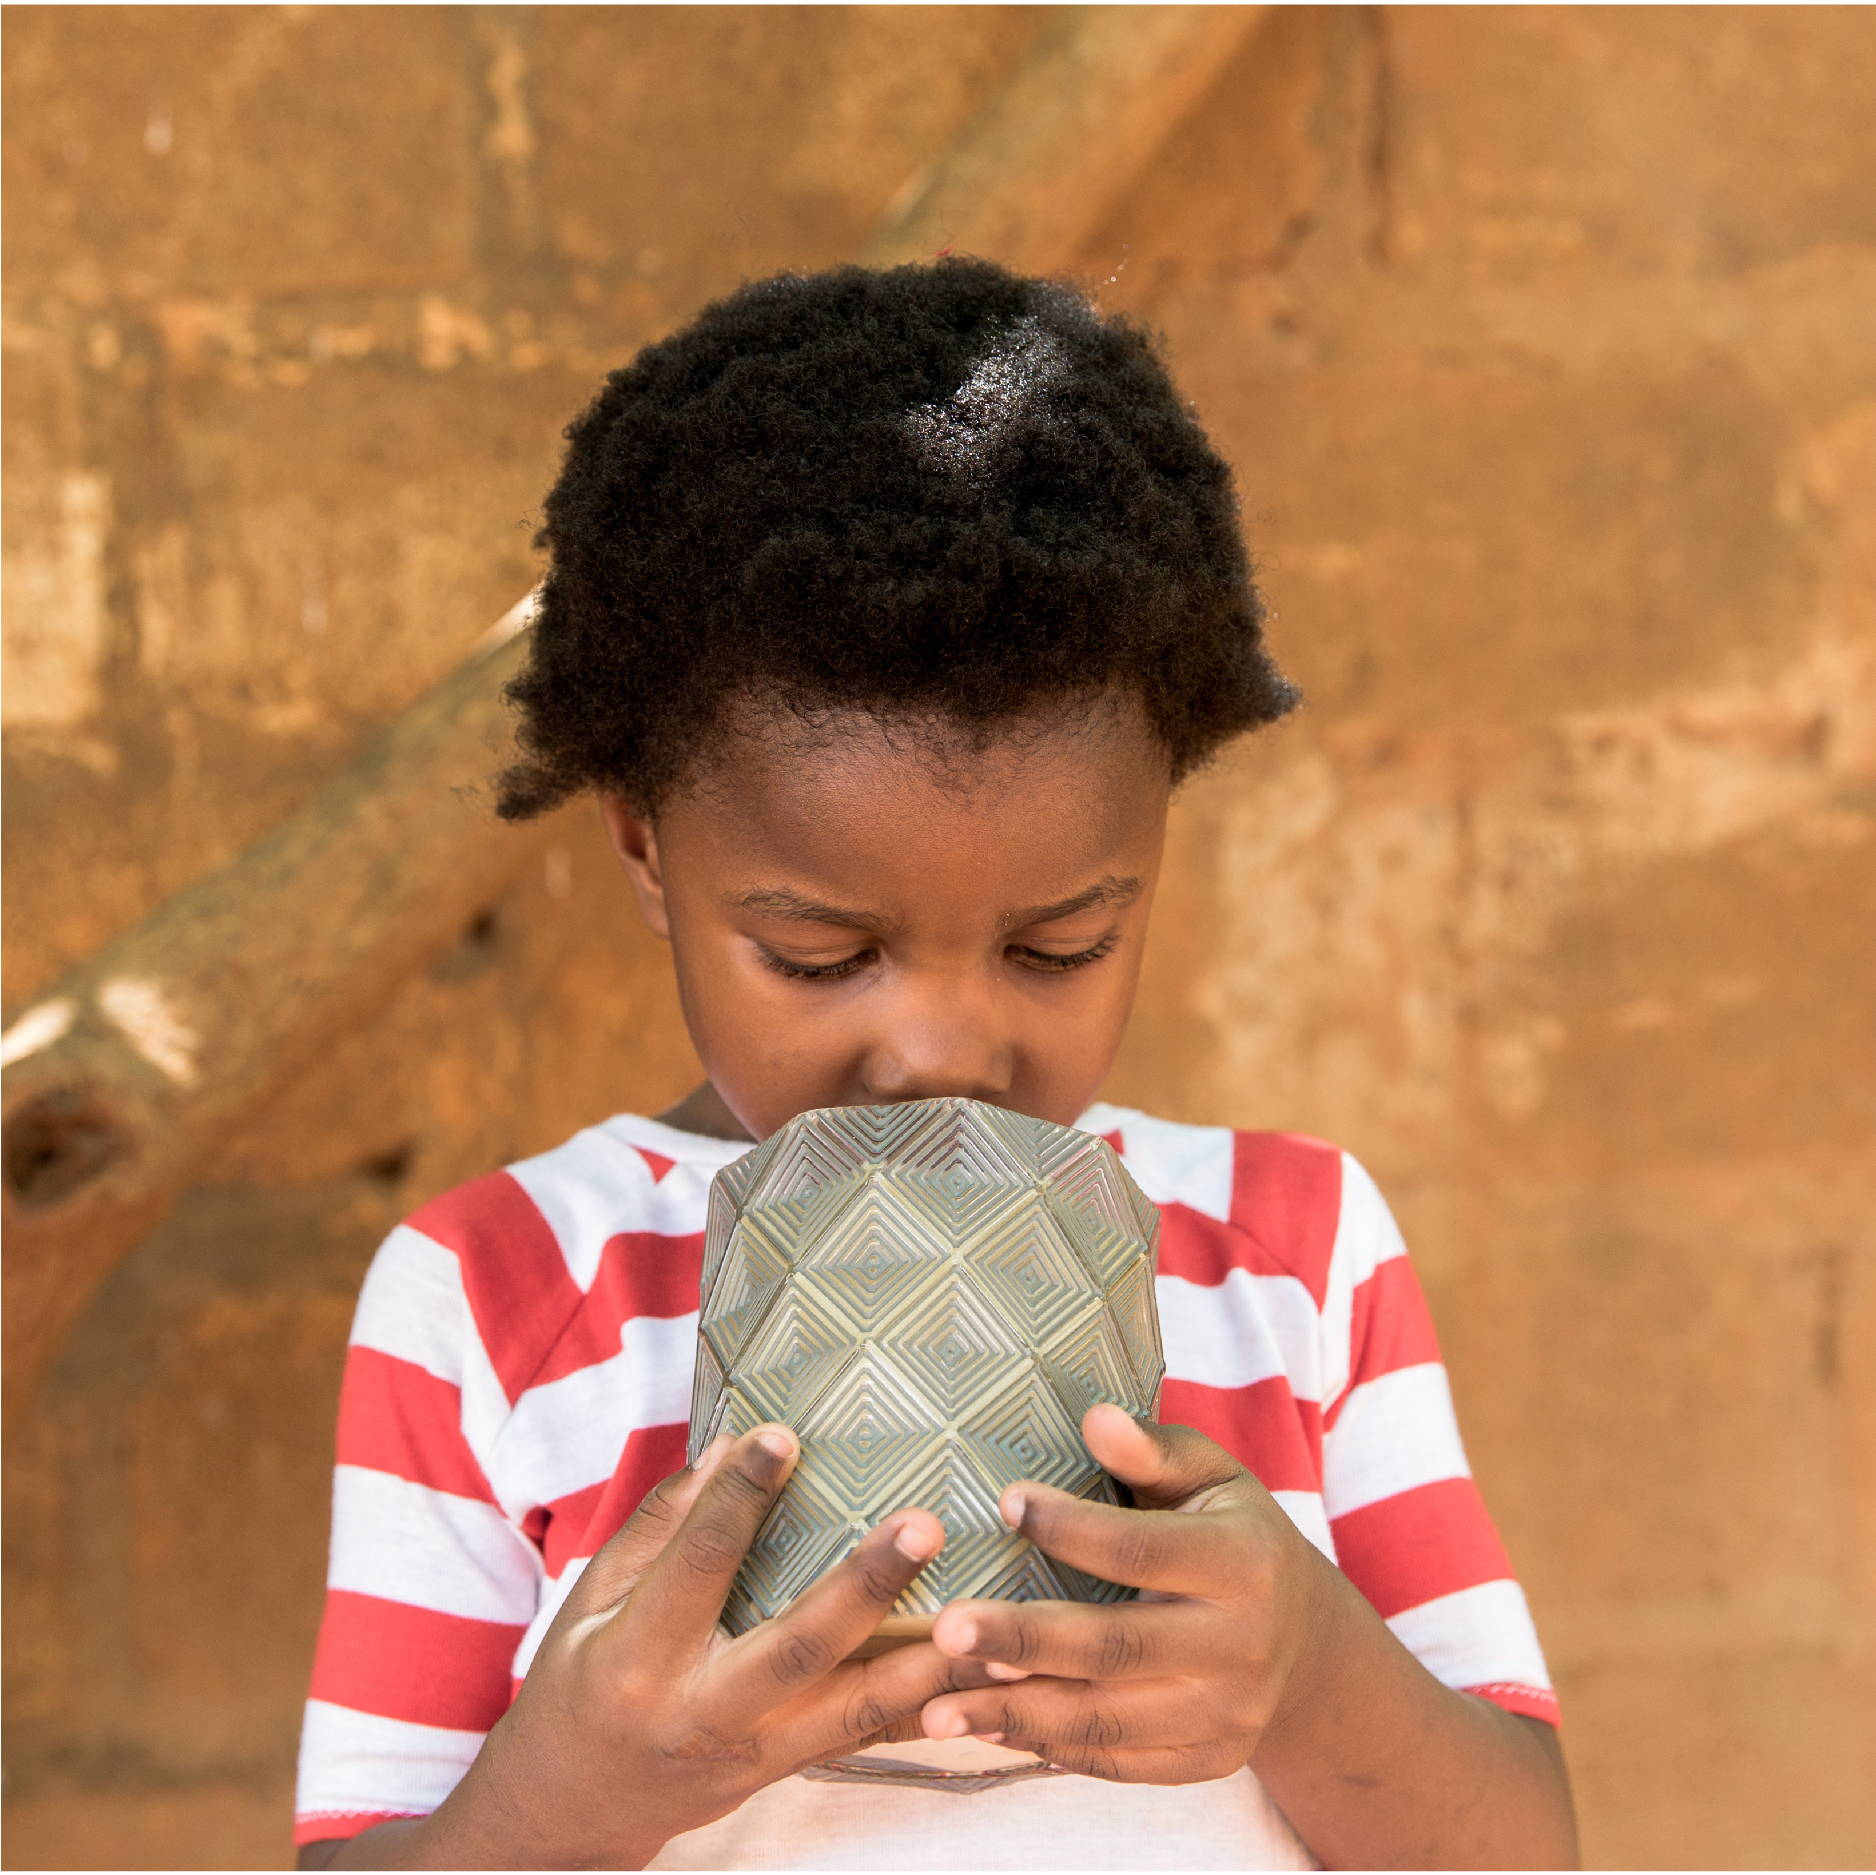 A young Zambian girl wearing a red and white striped shirt smells a Bridgewater Afternoon Retreat Candle.